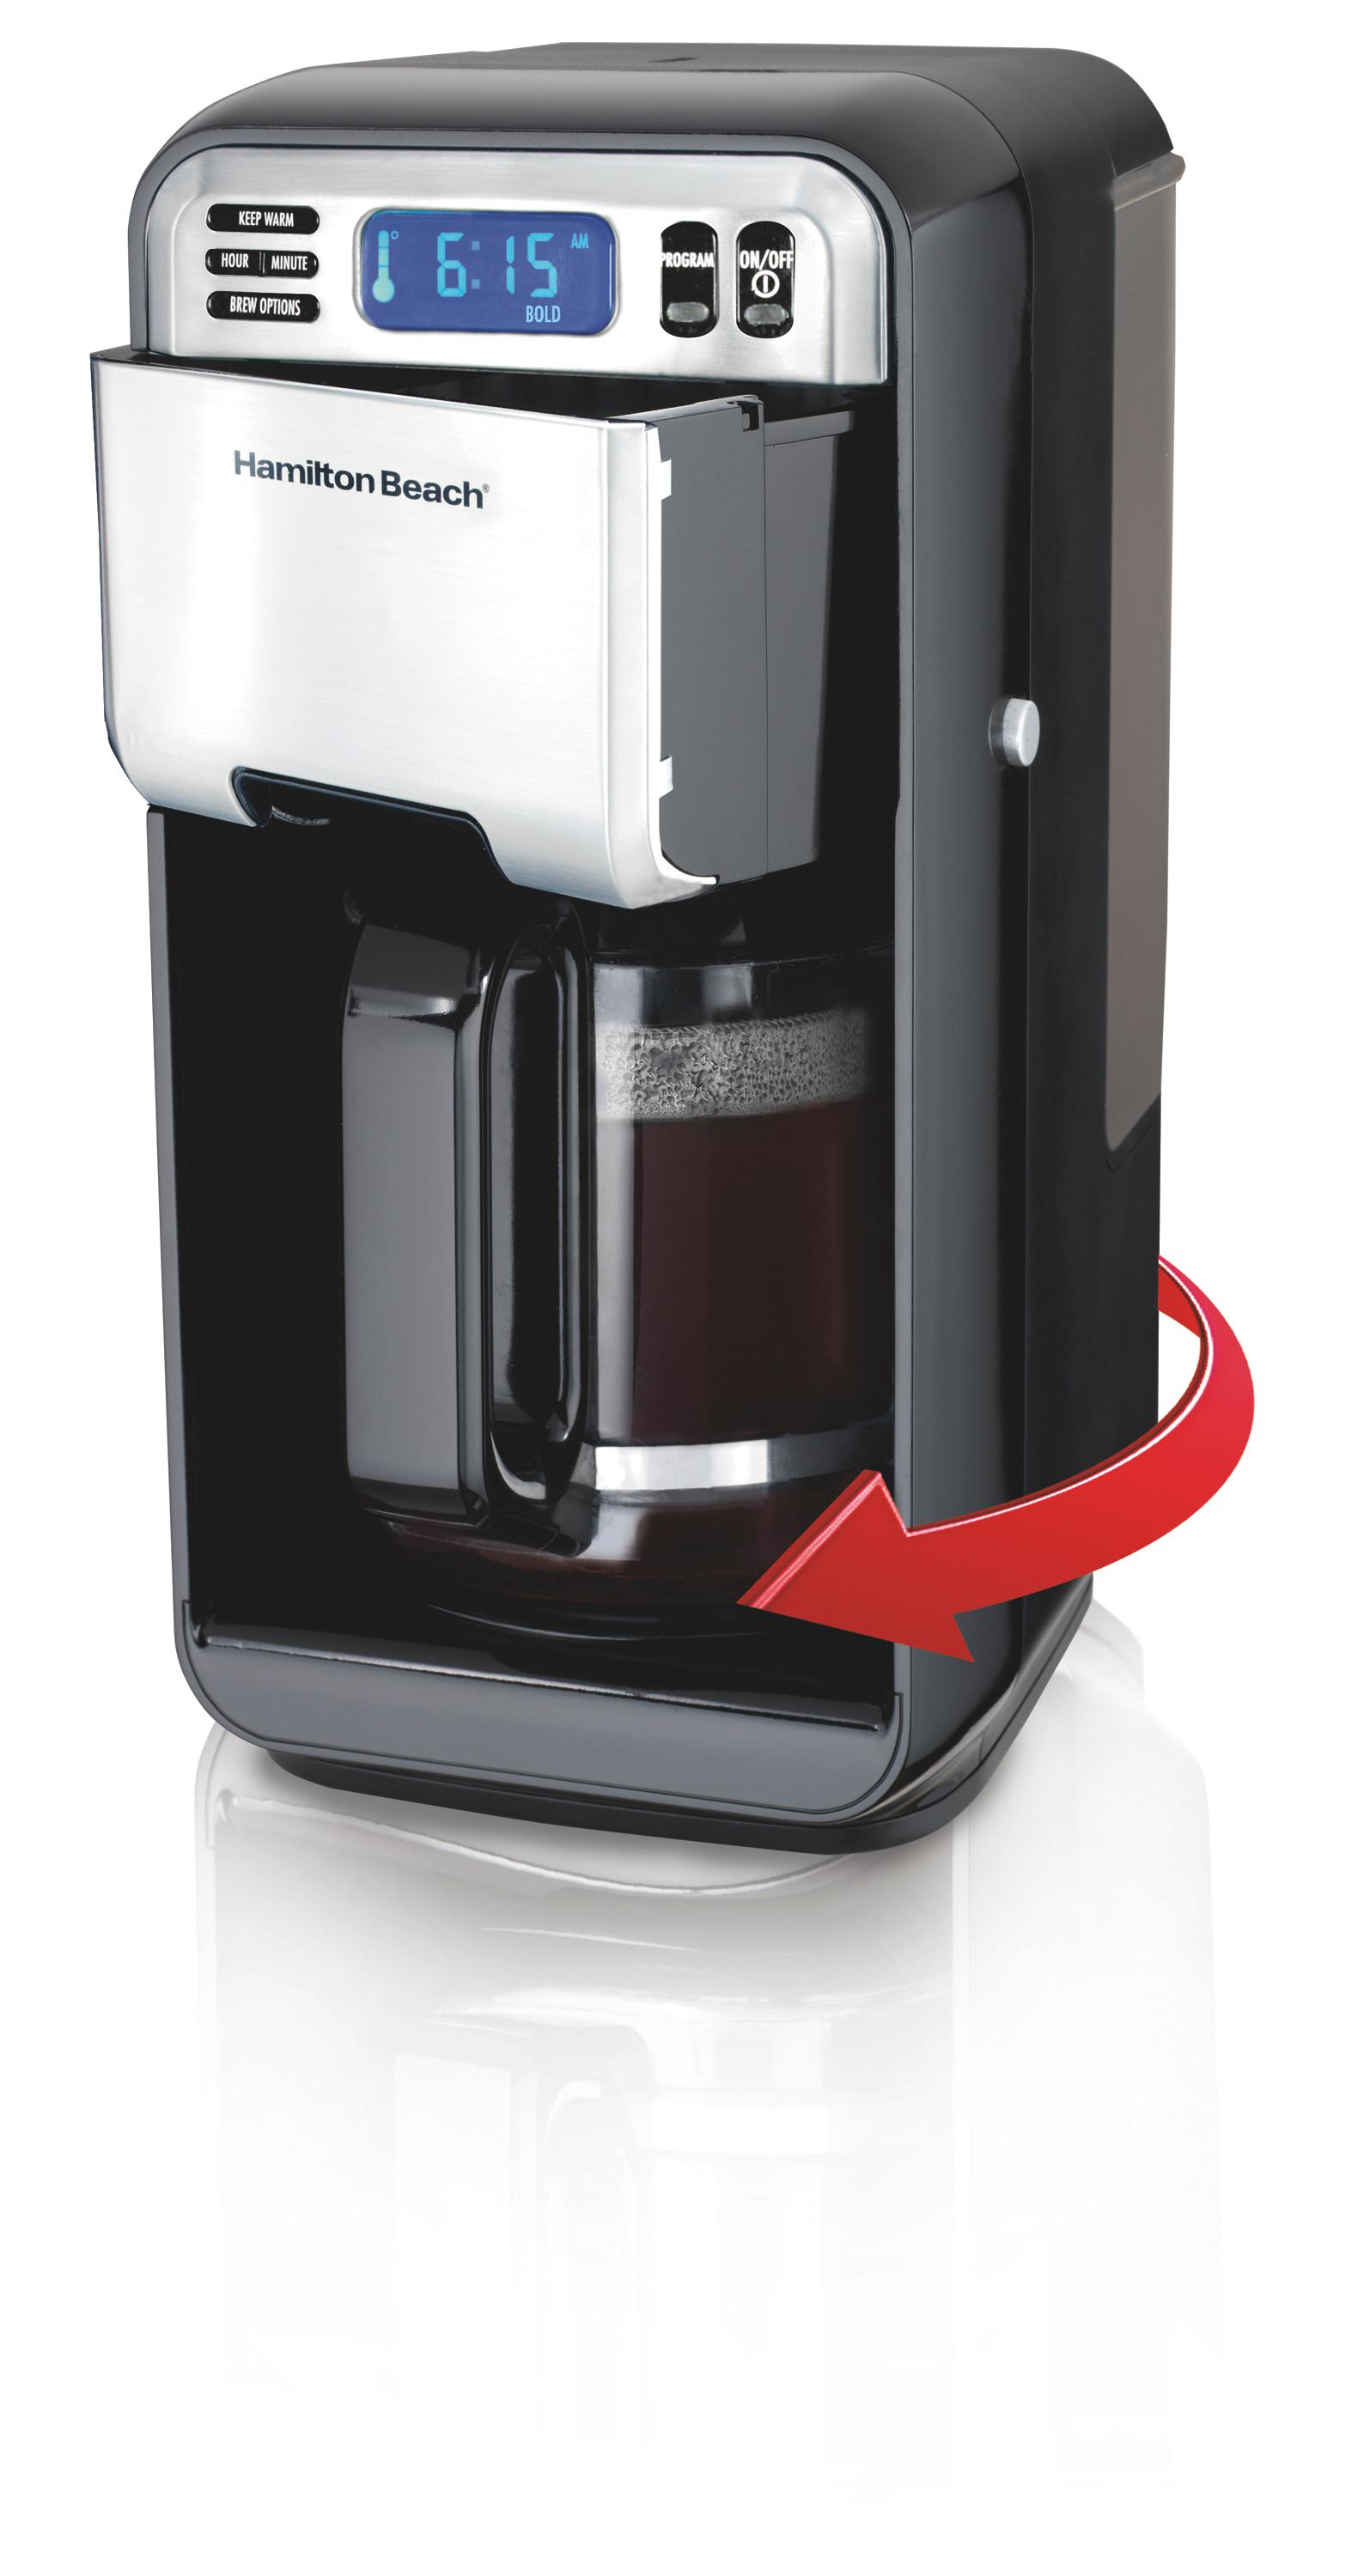 6 Cup Coffee Maker Programmable : Amazon.com: Hamilton Beach 46205 12-Cup Programmable Coffee Maker, Stainless Steel/Black ...